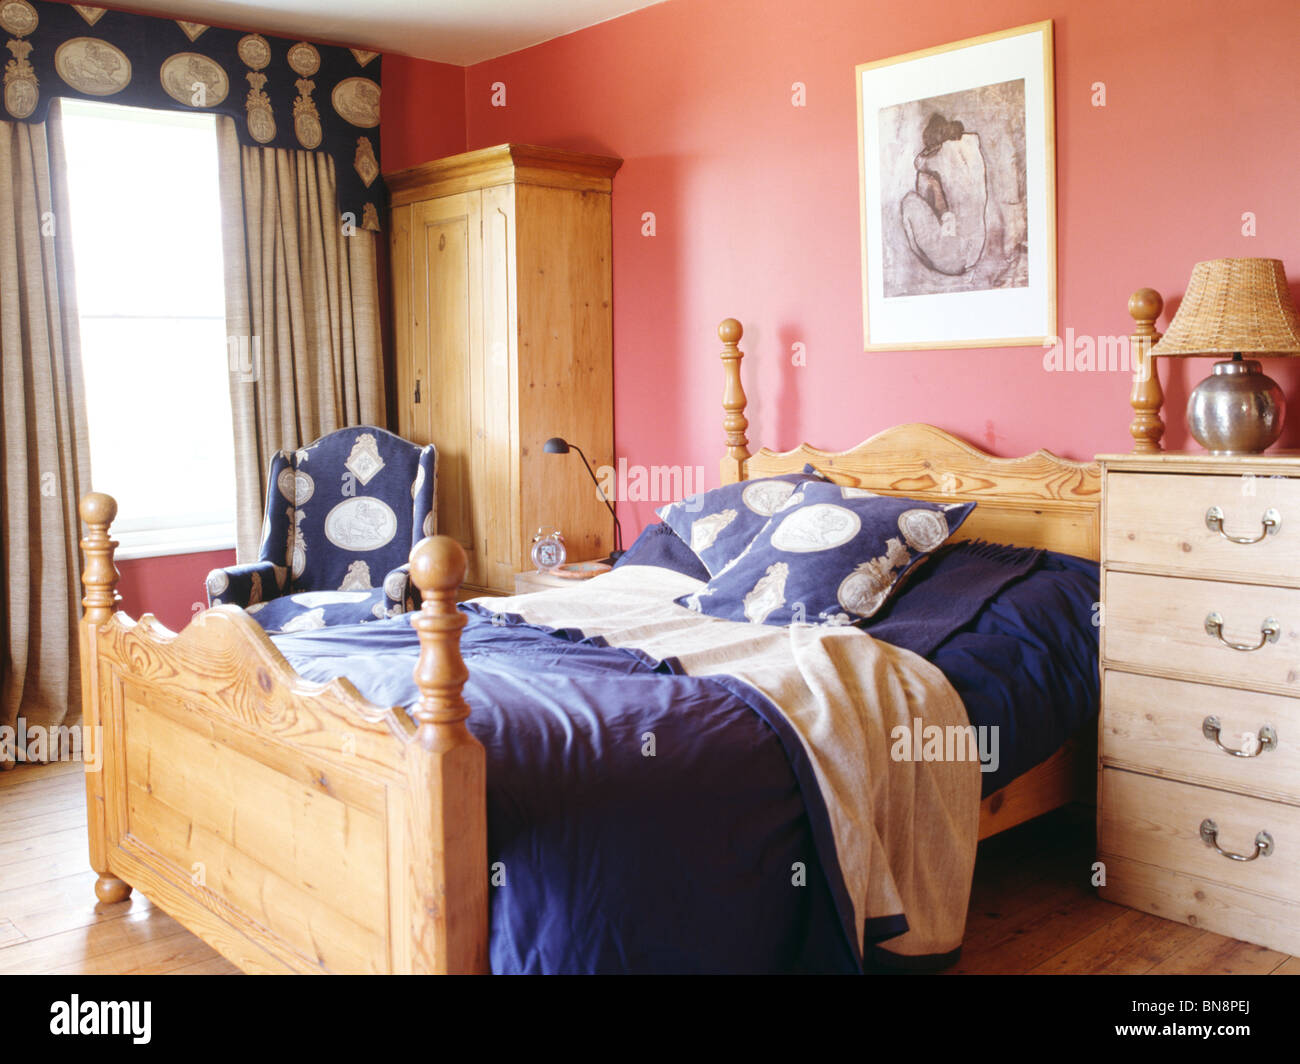 Pine bed with blue cushions and bedlinen in pink bedroom with pine ...